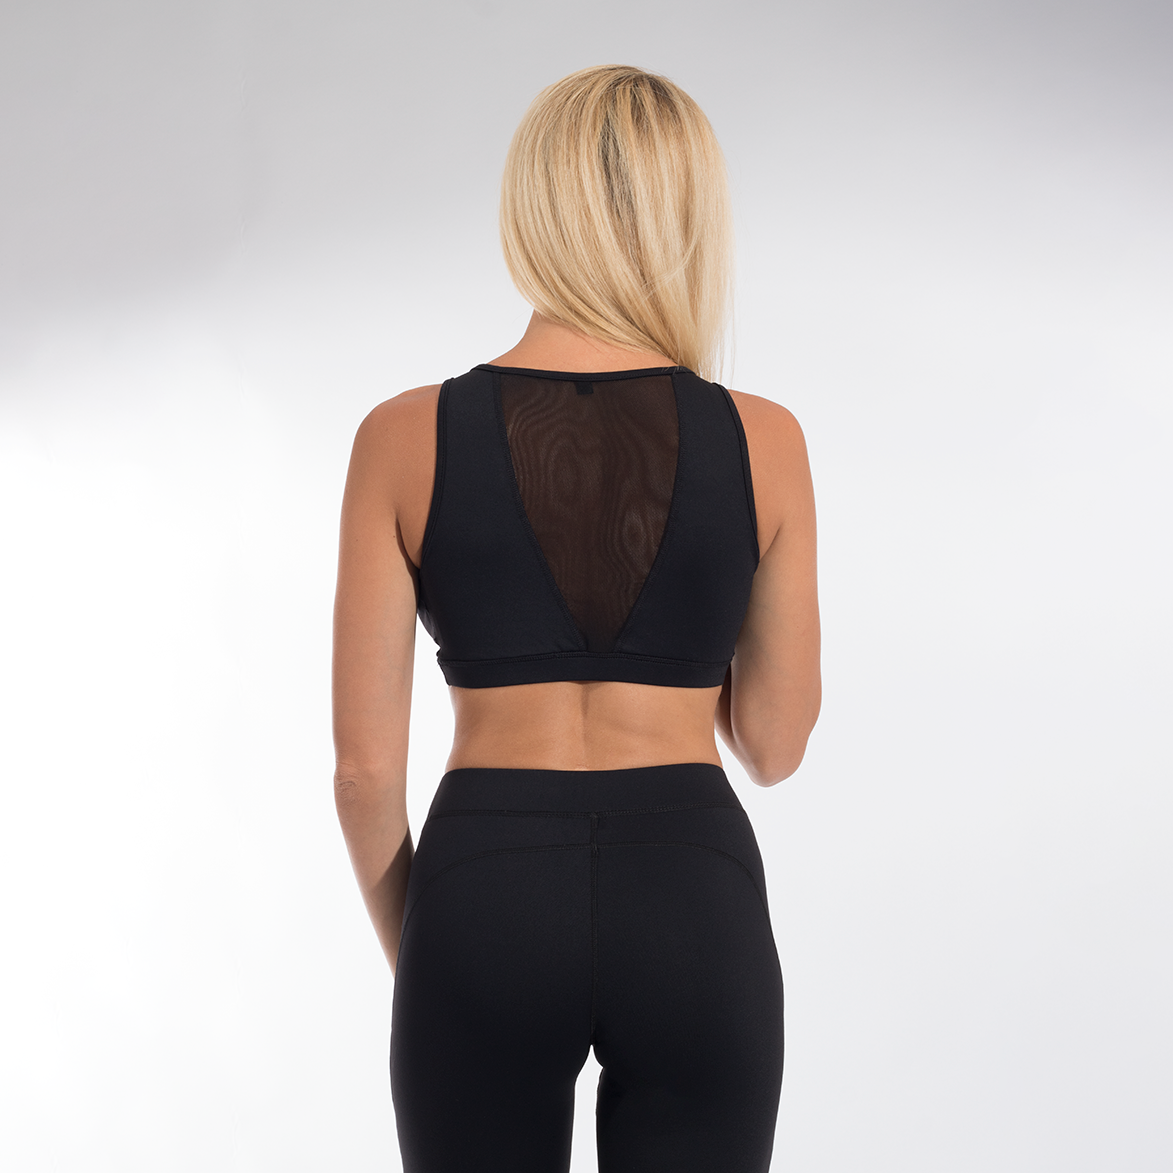 Versa Forma | Exclusive Crop Bra - Black